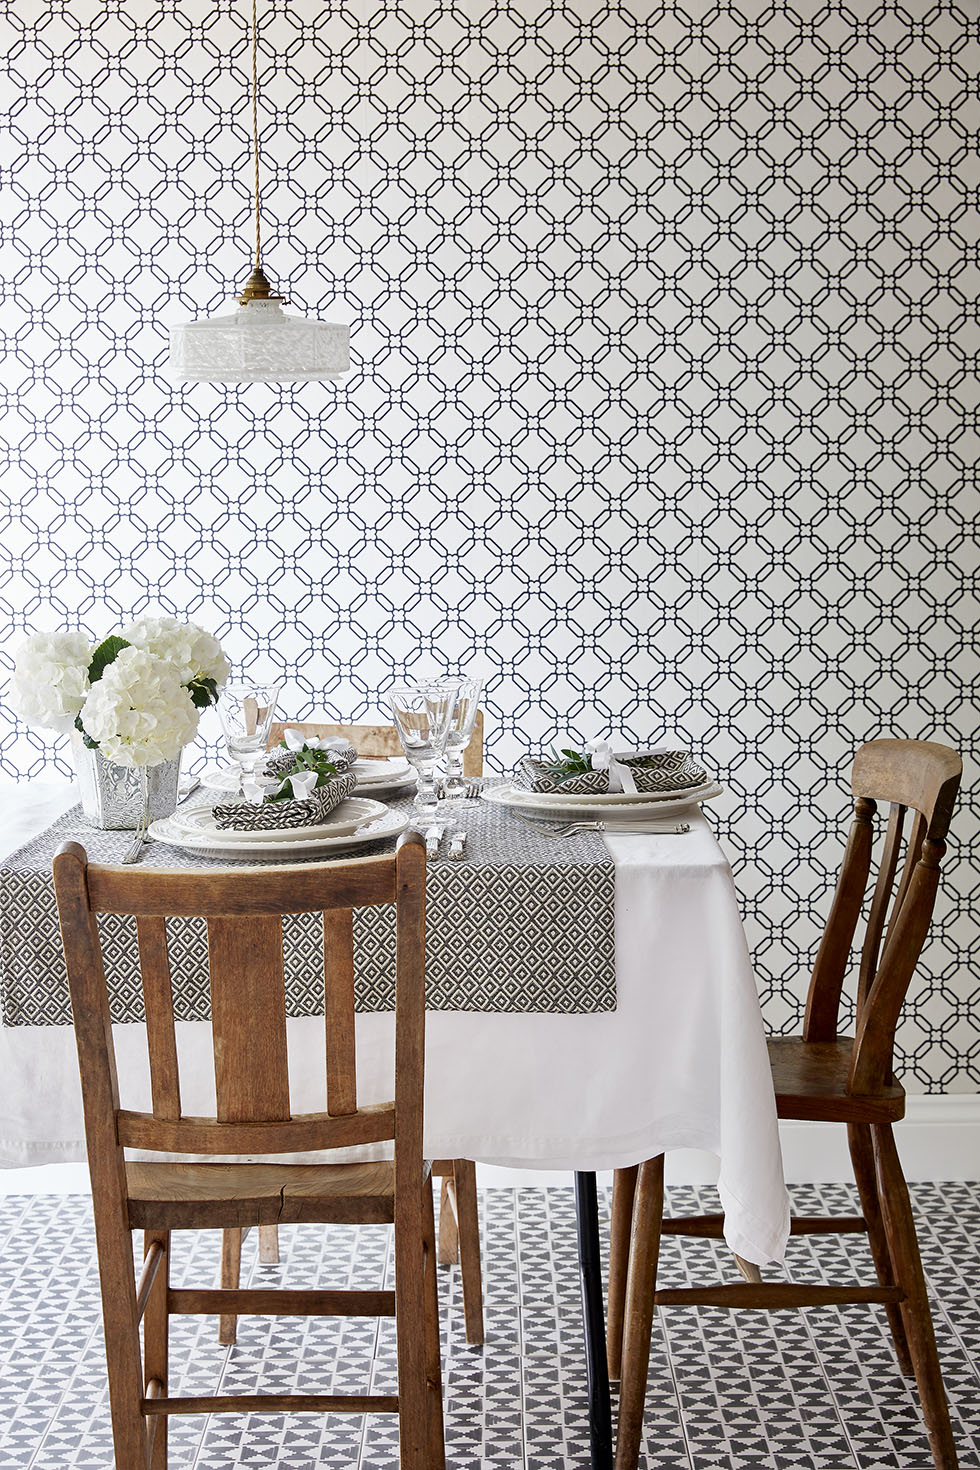 Marks And Spencer Dining Table And Chairs Images Marks  : geometric wallpaper dining room from favefaves.com size 980 x 1470 jpeg 546kB